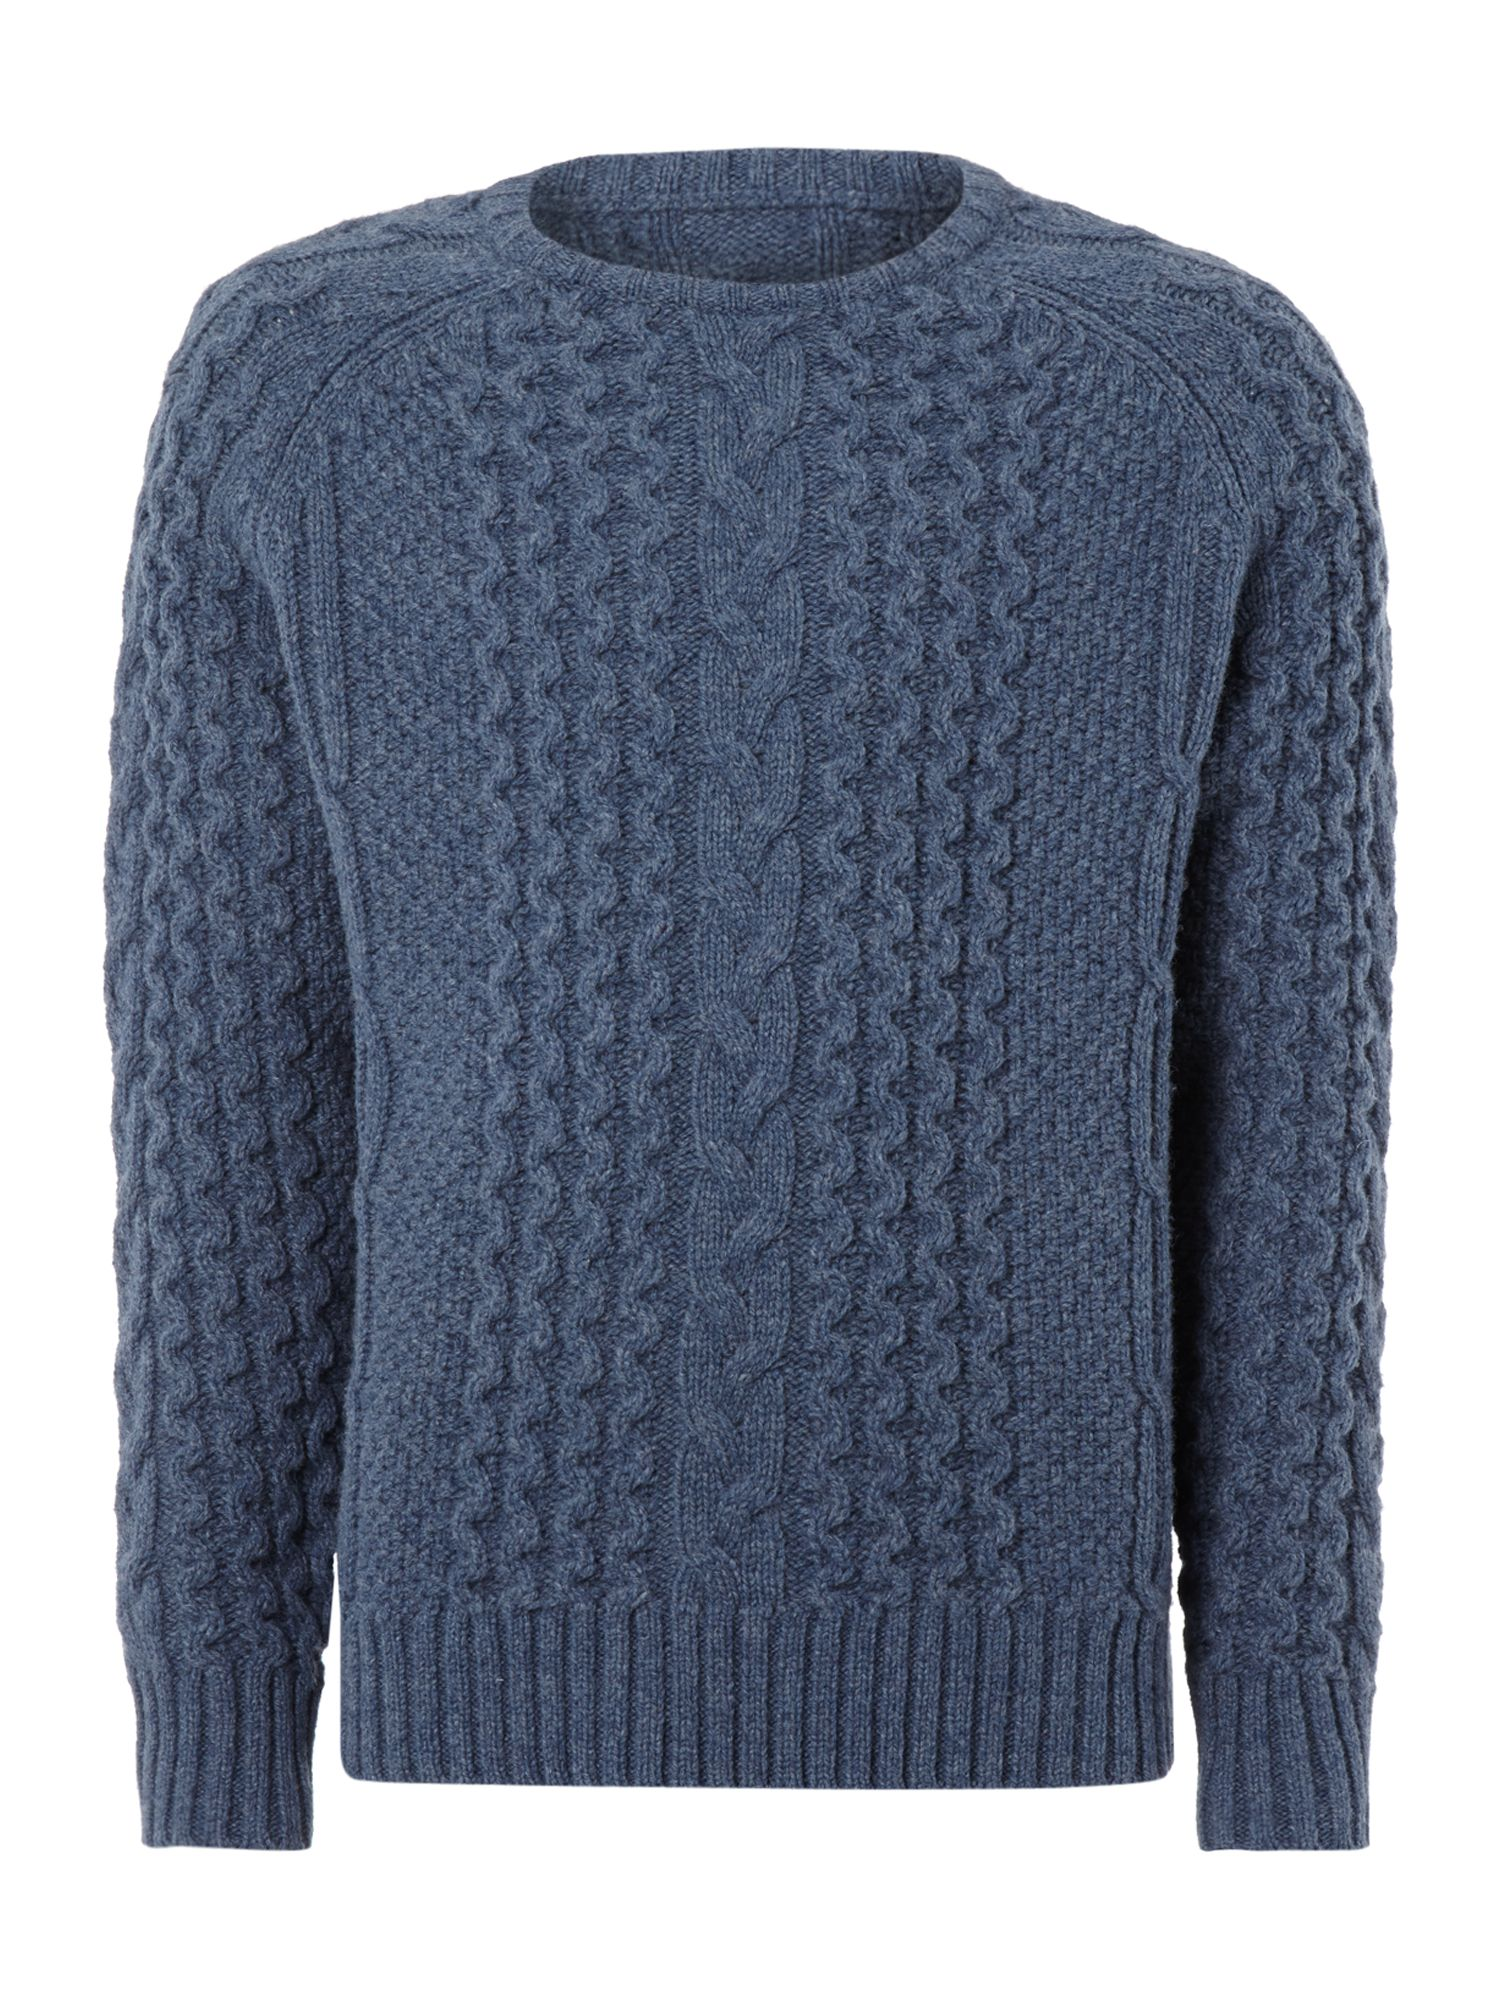 Redmayne limited edition cable crew neck knitwear